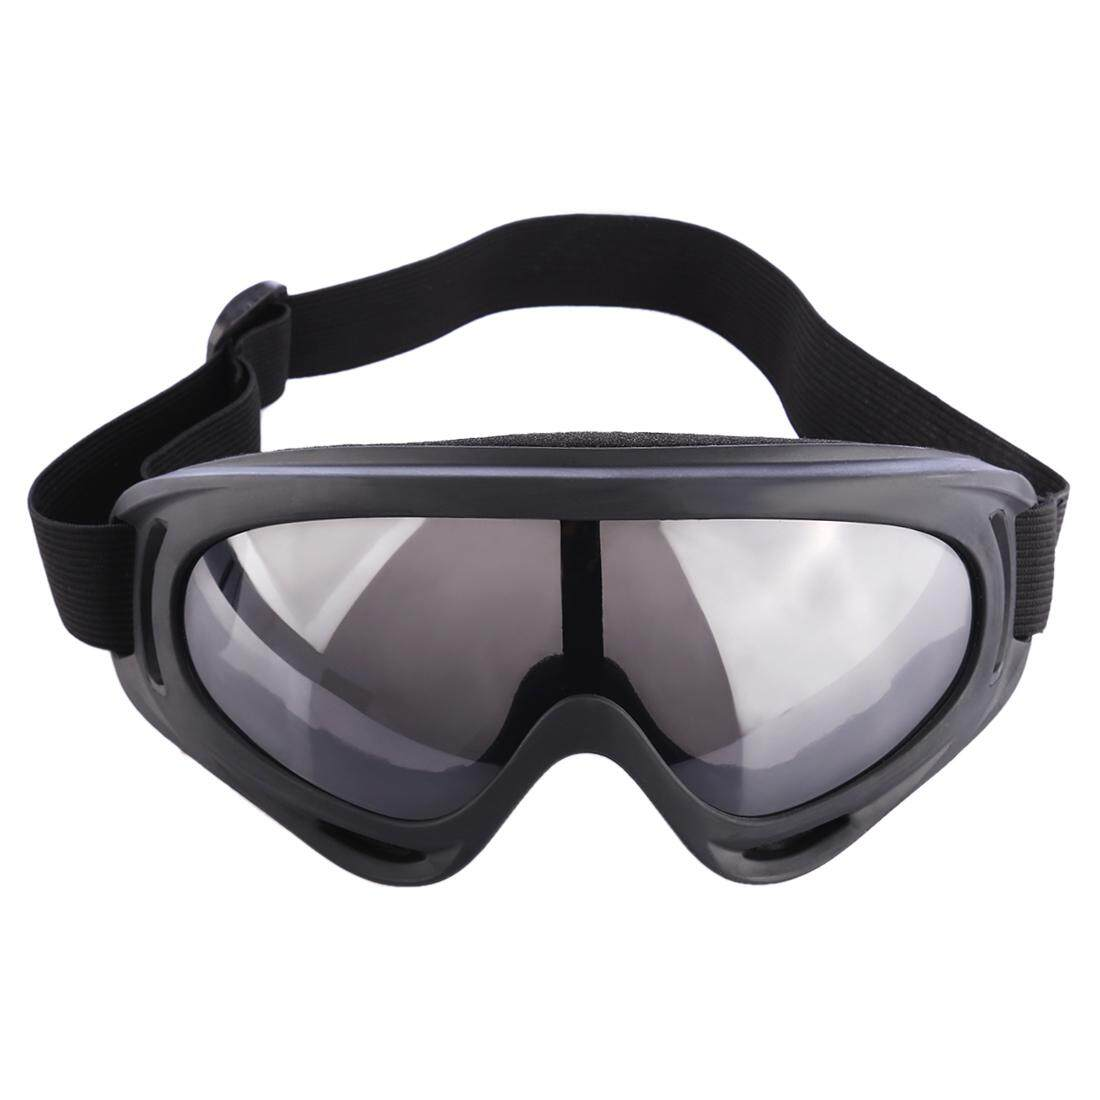 360WISH X400 Classic Style Tactical Soft Bullet Dart Explosion-proof Shock-resistant Protective Goggles for Nerf - Black-grey